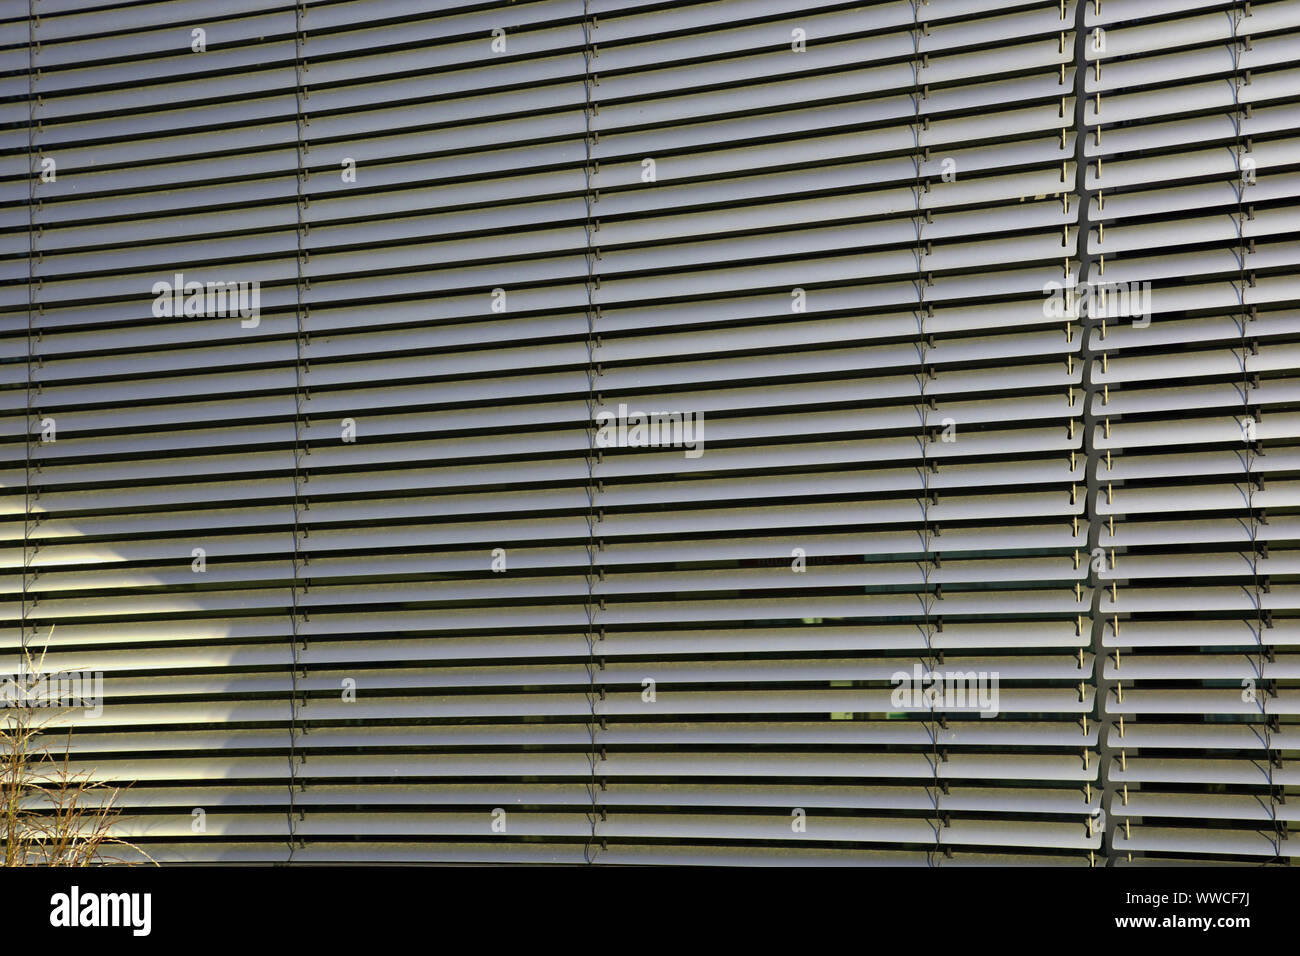 Outside Blinds Background Metal External Blinds As Sun And Sight Protection Stock Photo Alamy